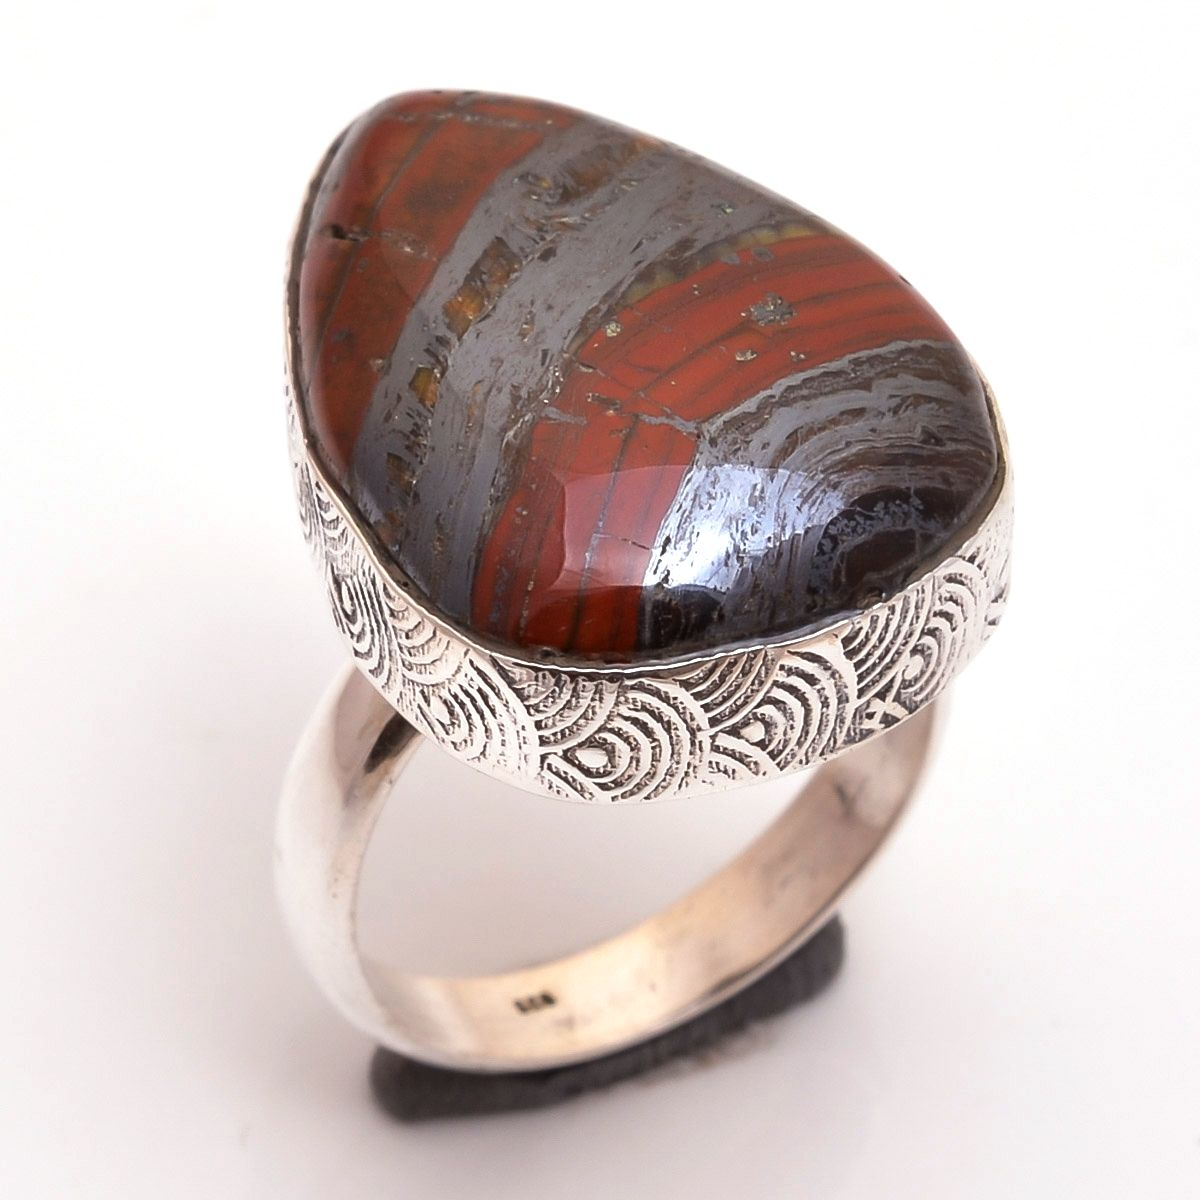 Iron Tiger  Gemstone 925 Sterling Silver Ring Size 8.5